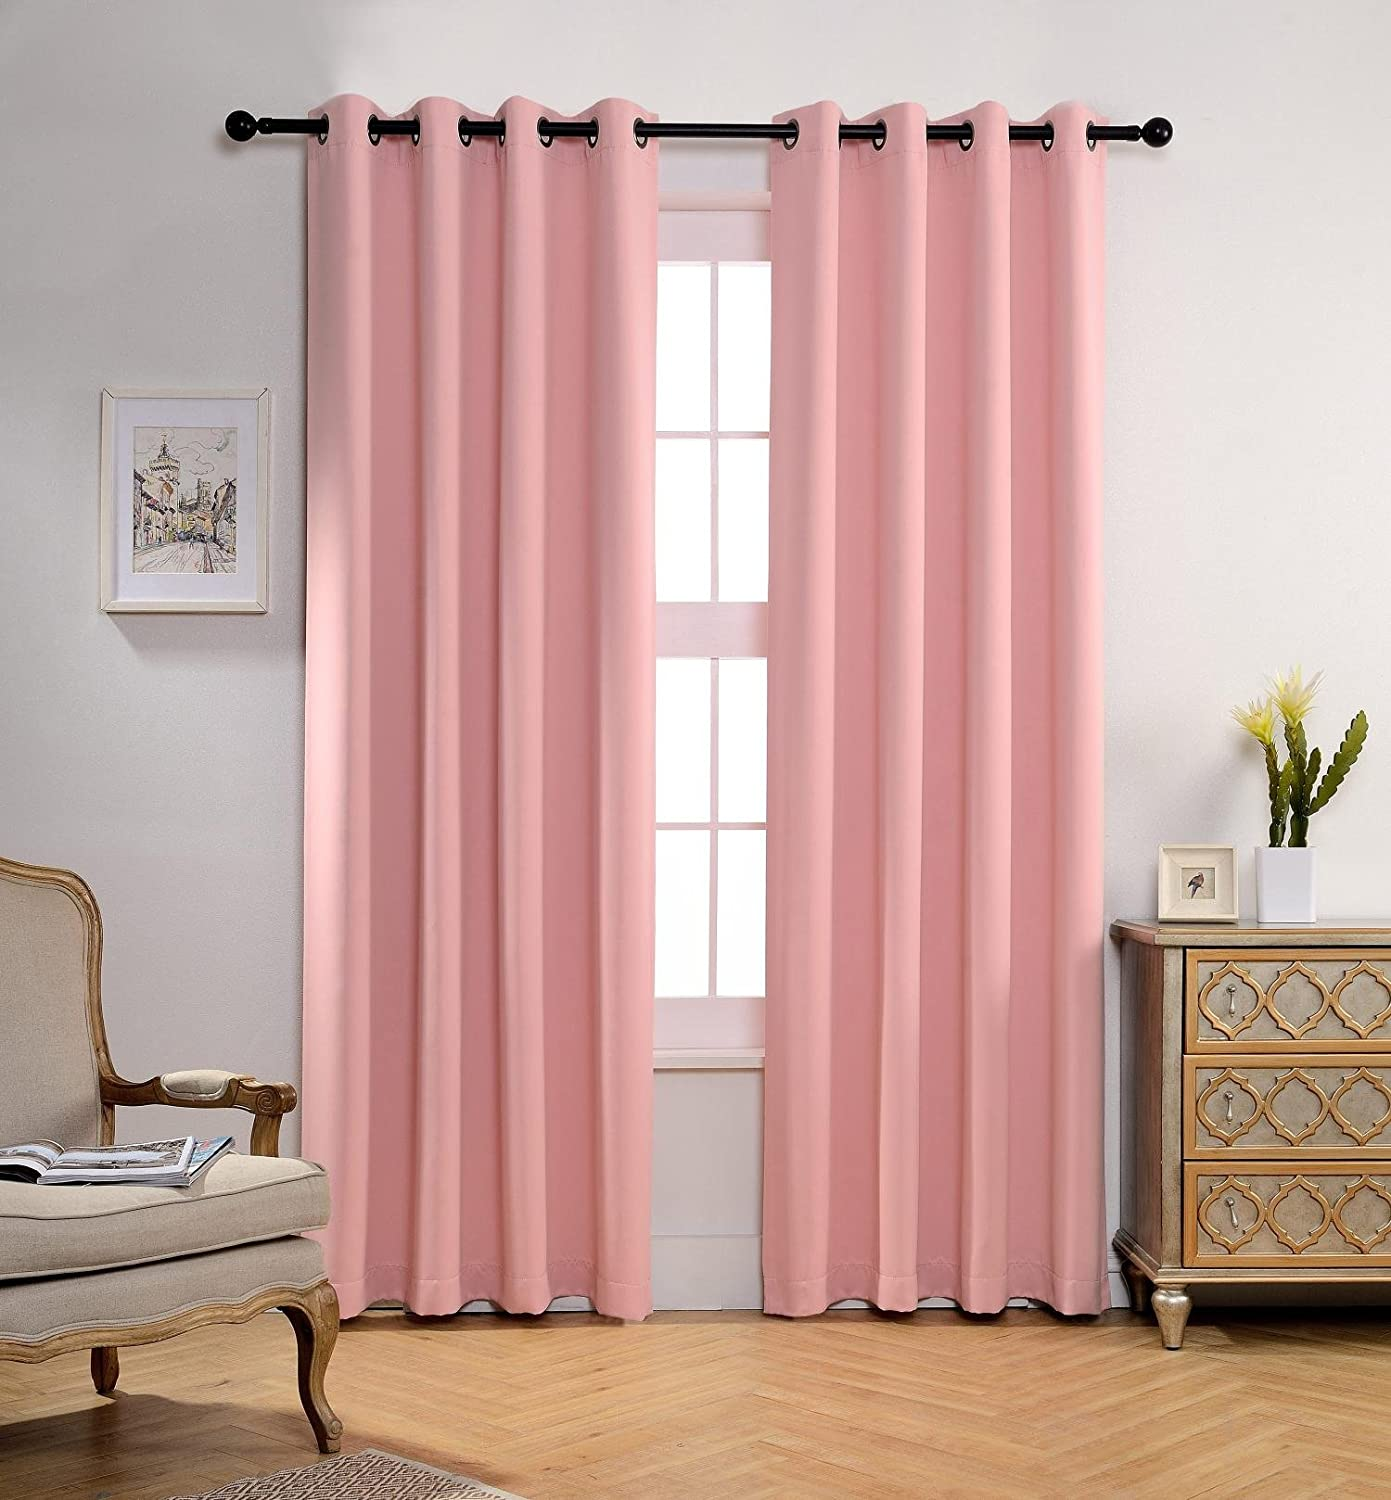 Blackout Window Curtain Panels with 2 Tie Backs, Pink